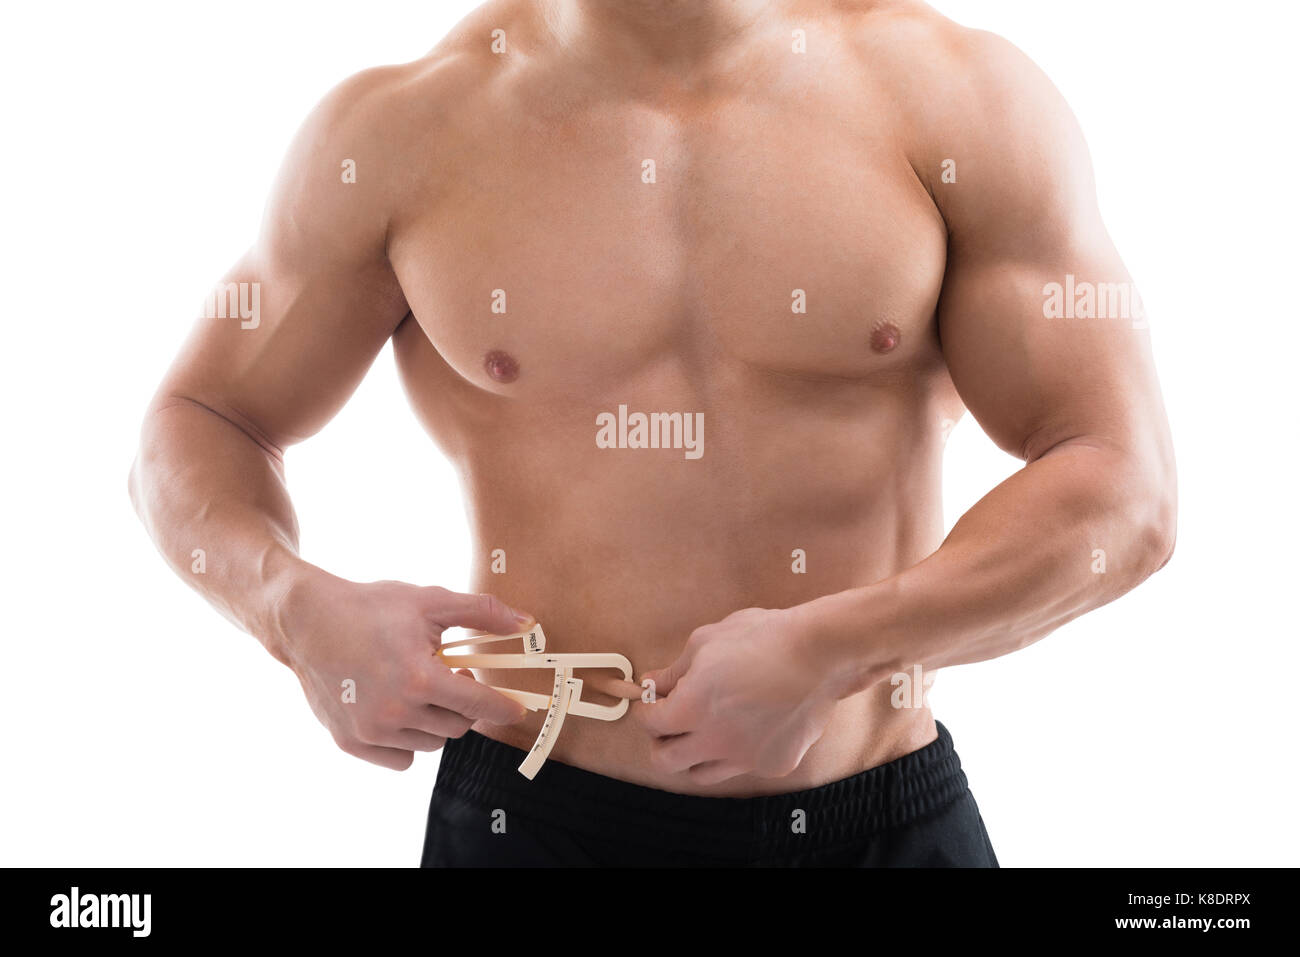 Midsection of strong man measuring fats with caliper against white background - Stock Image